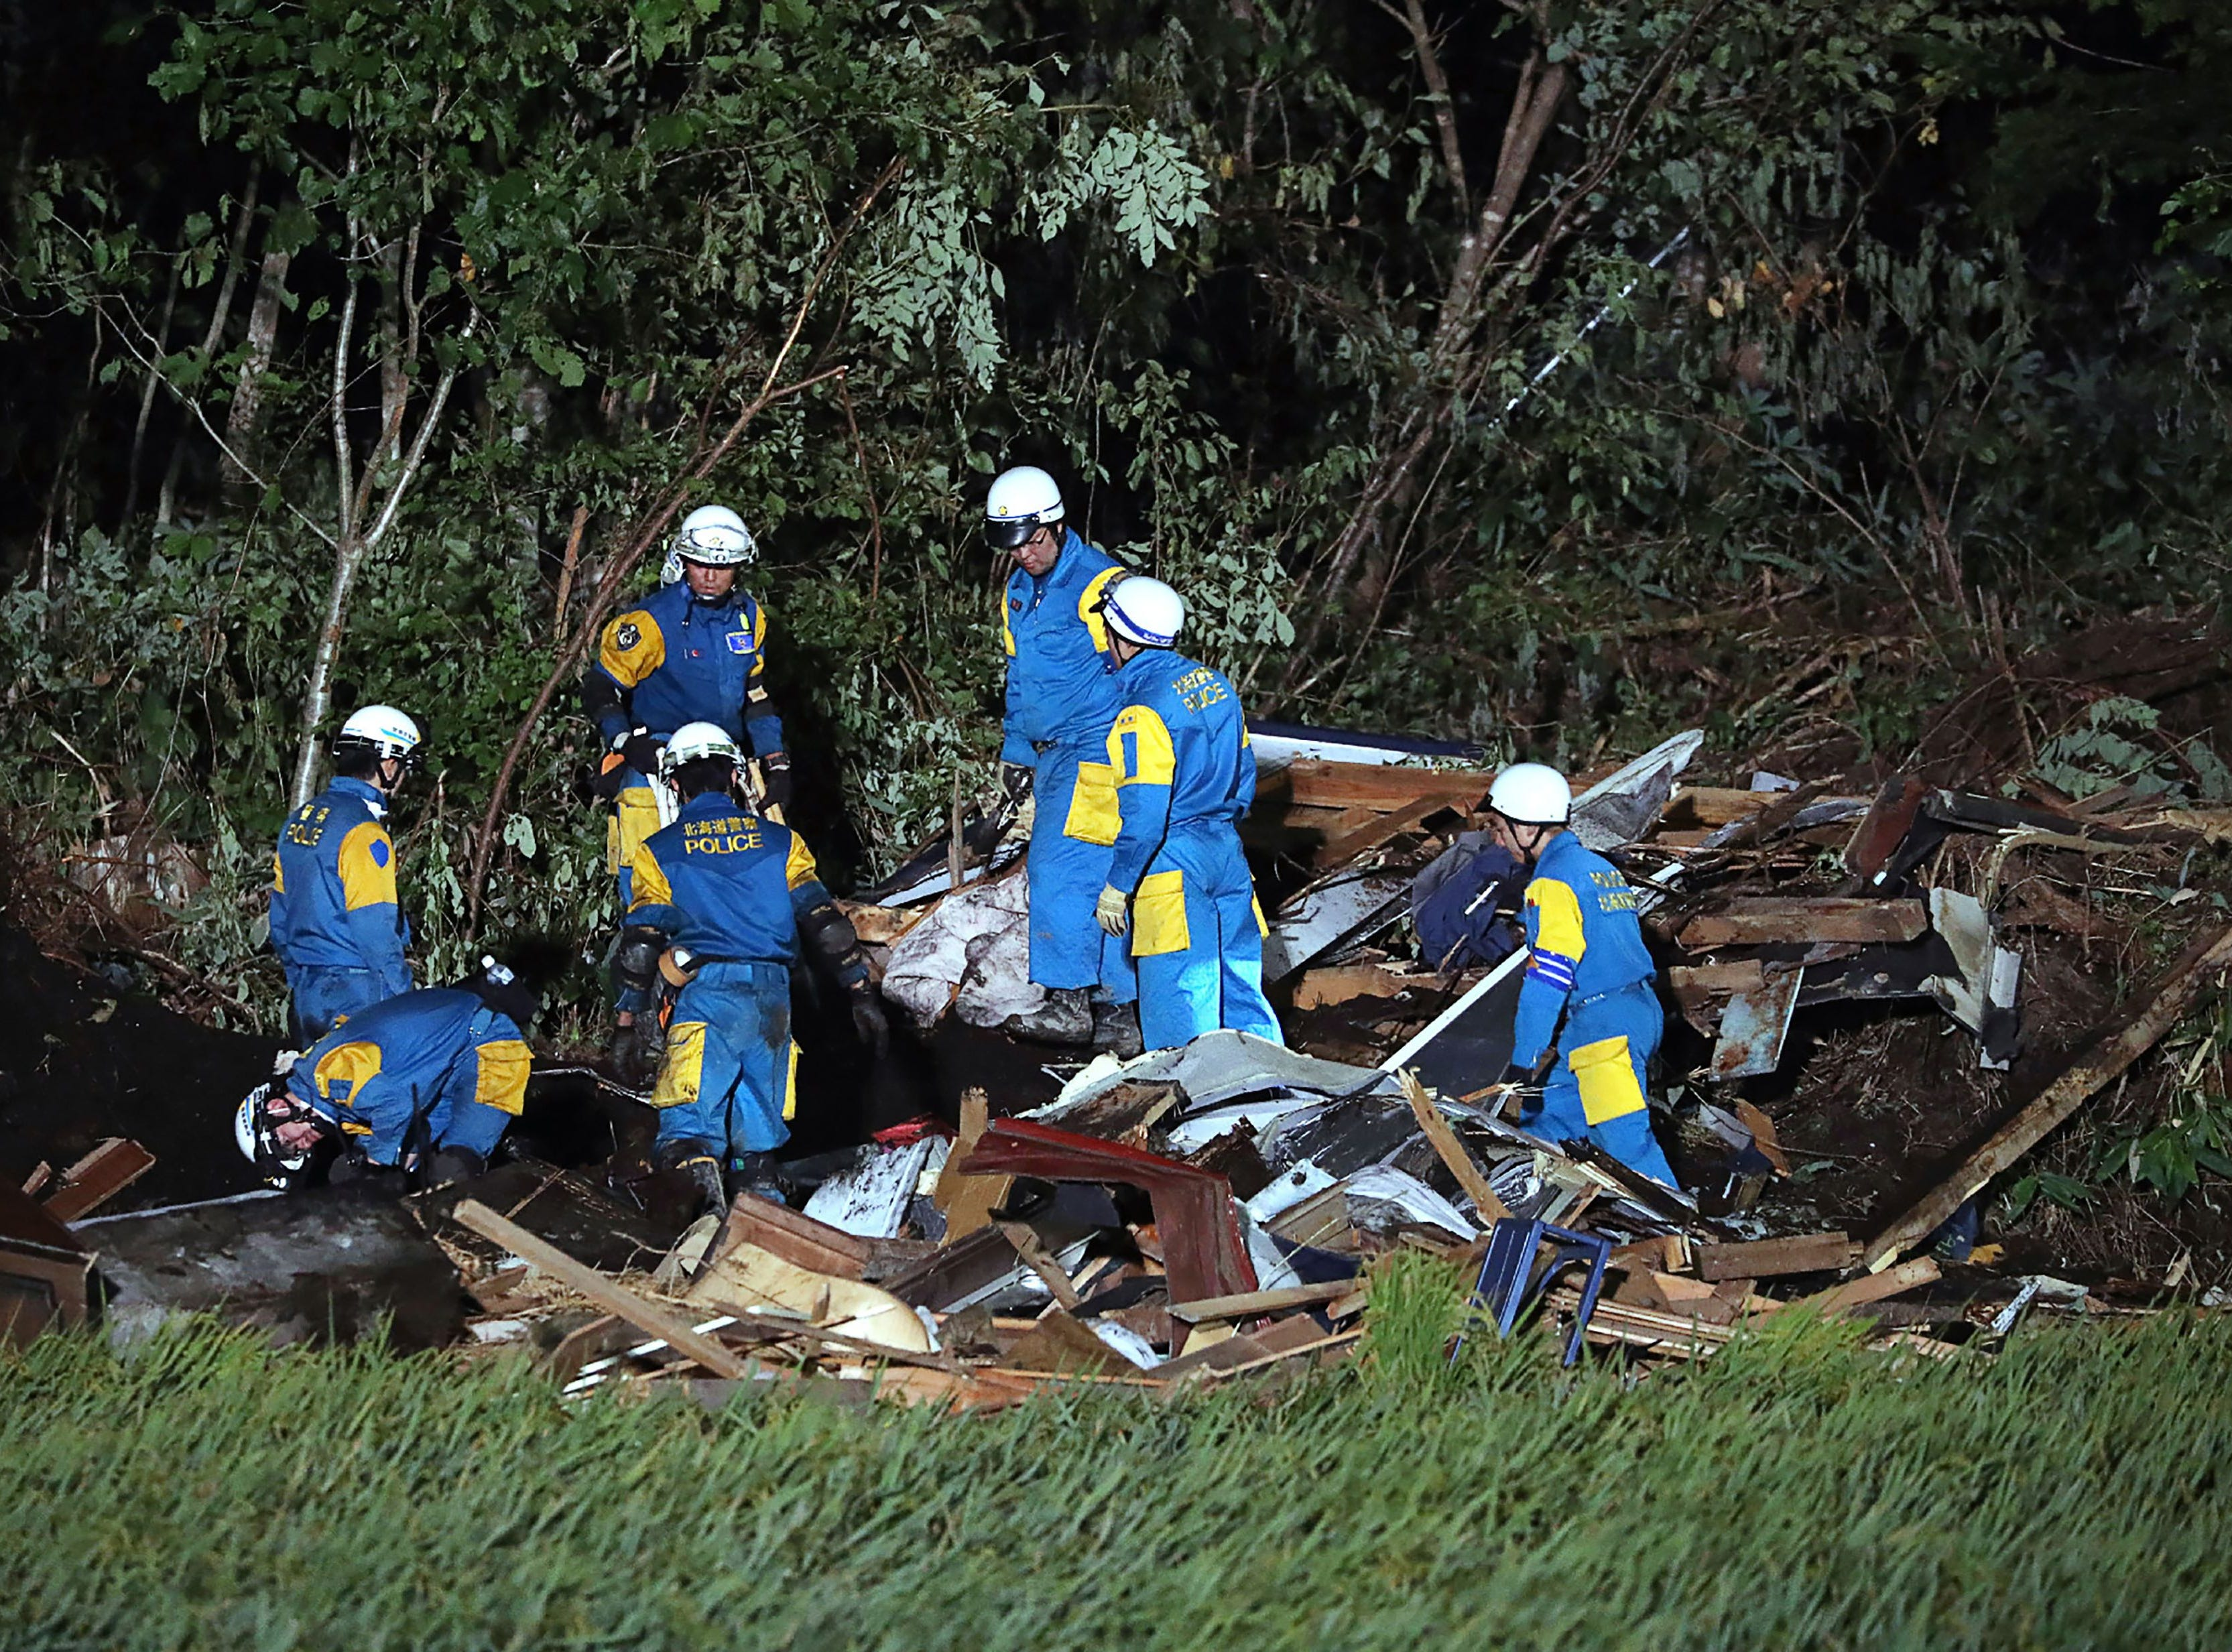 Japanese policemen work during a rescue operation in the area affected by landslides triggered by an earthquake in Atsuma, Hokkaido prefecture on Sept. 6, 2018.